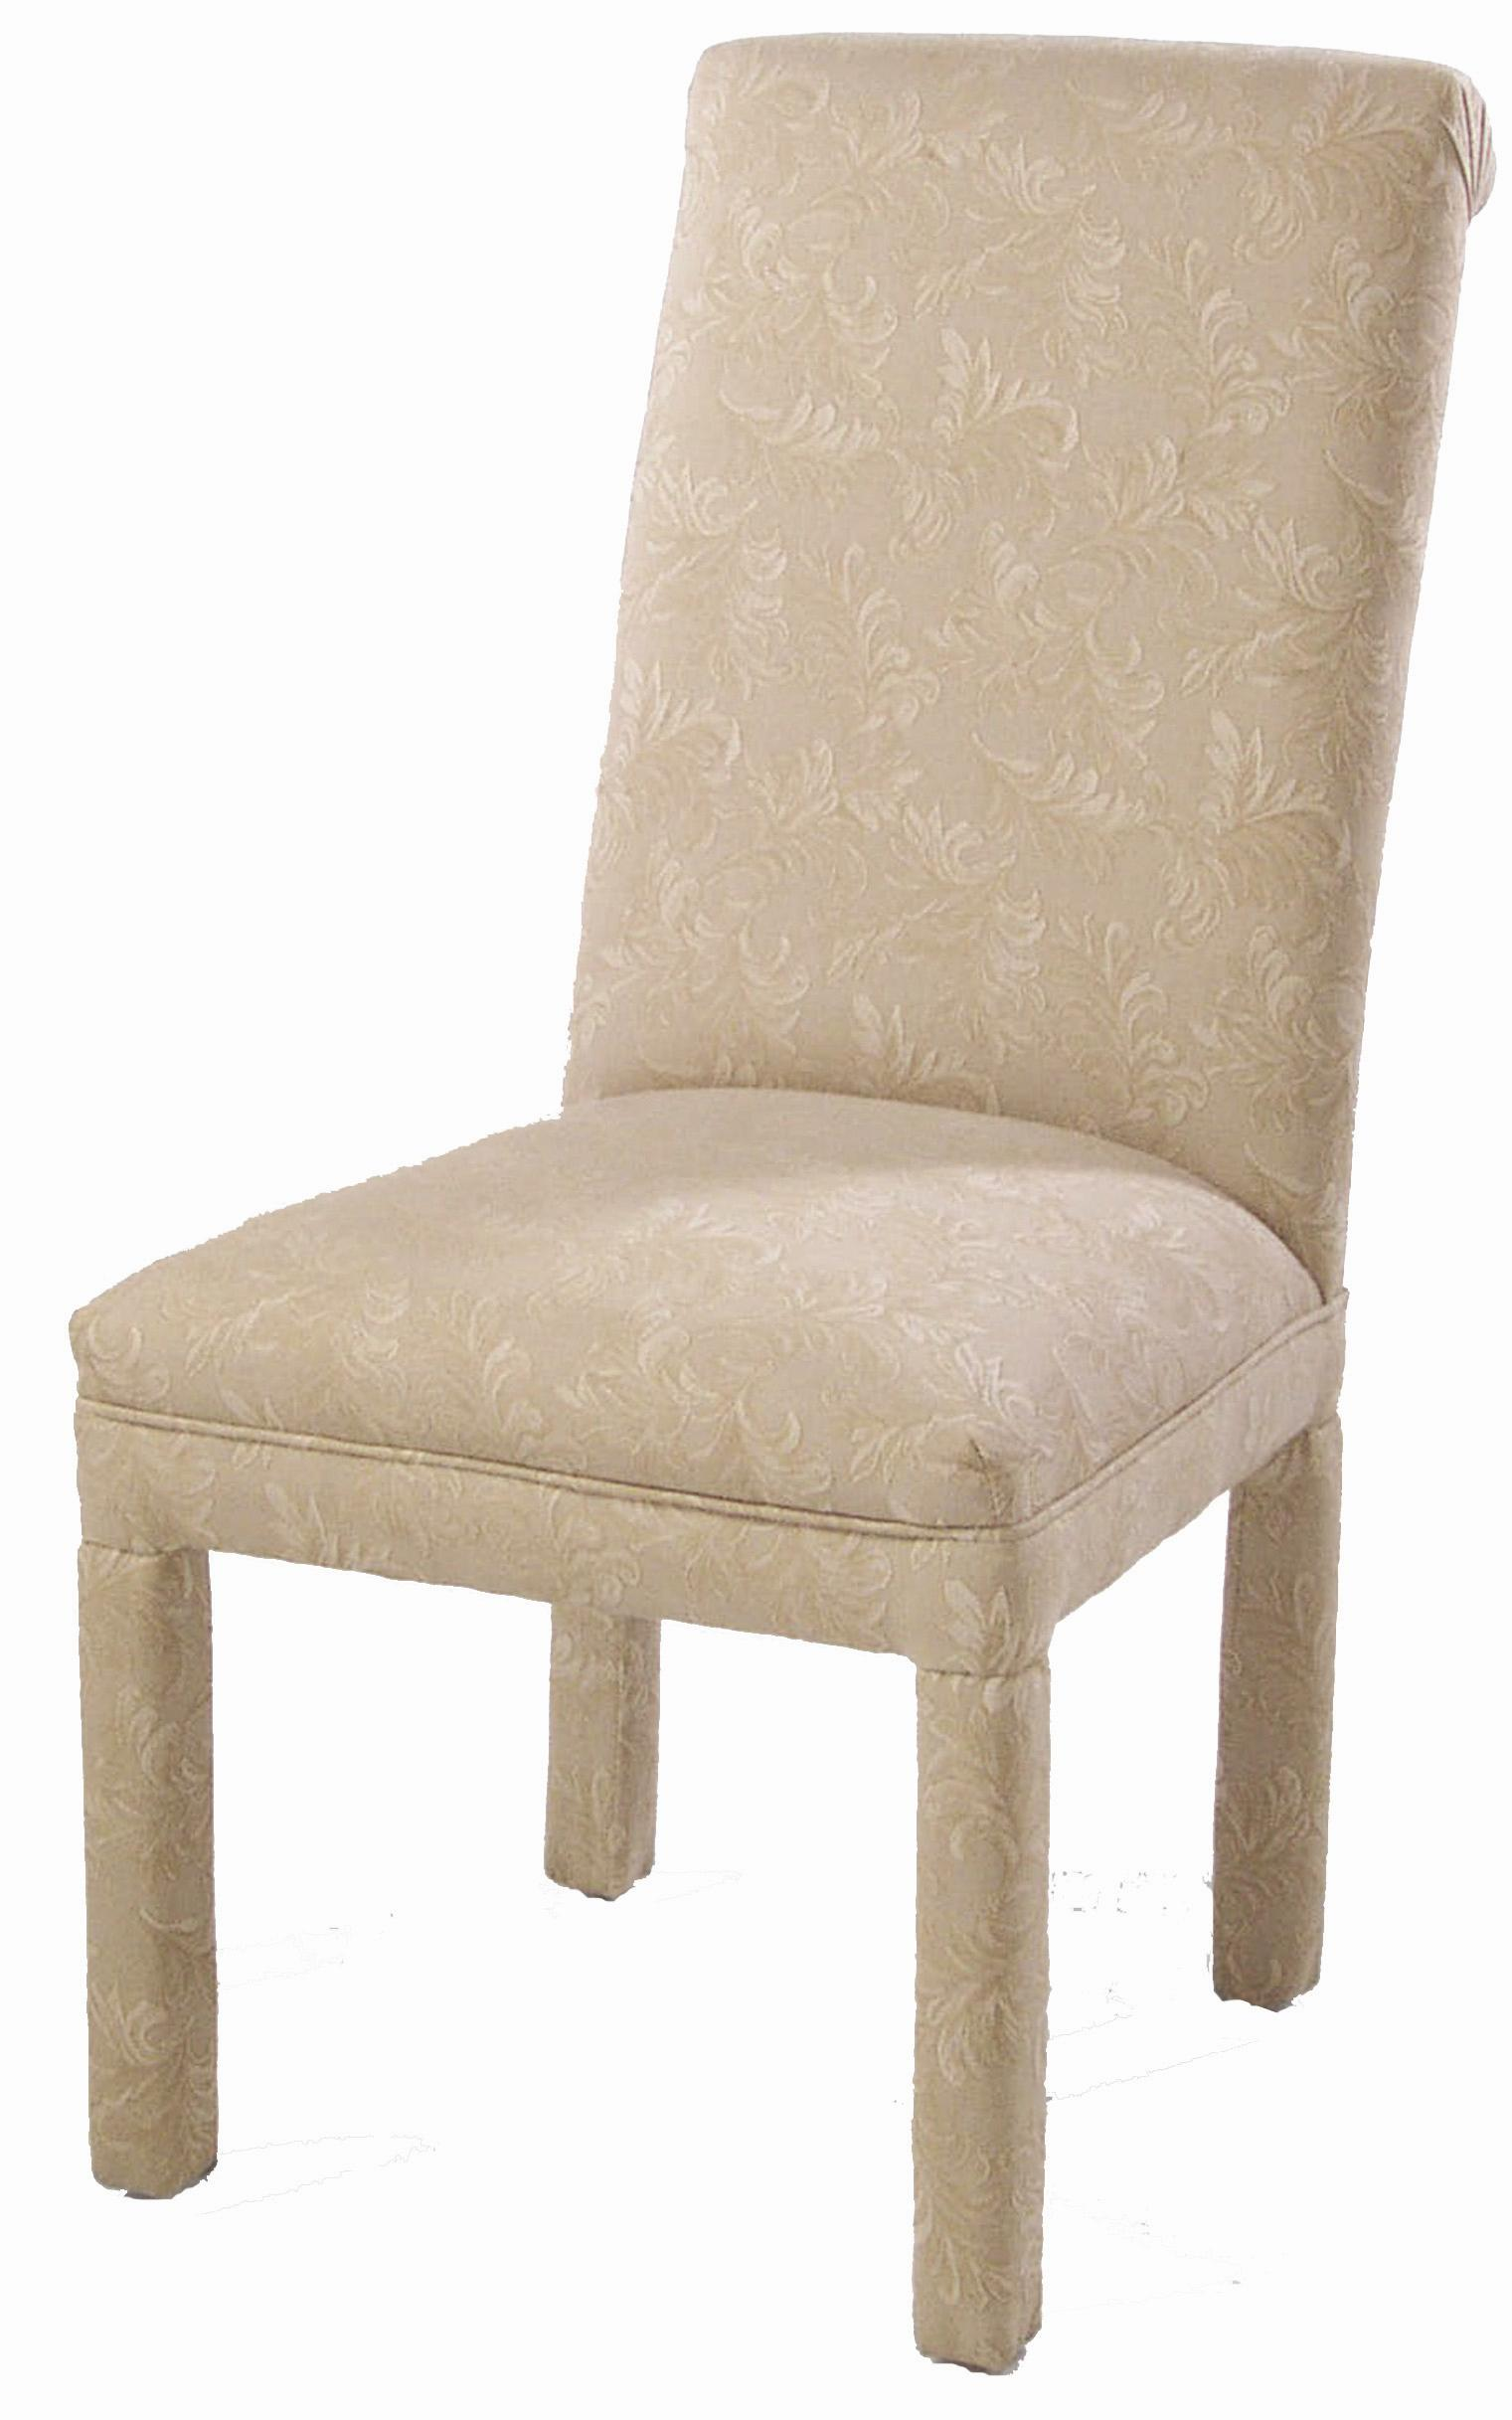 Upholstered dining chair by cmi wolf and gardiner wolf for Upholstered accent chairs cheap